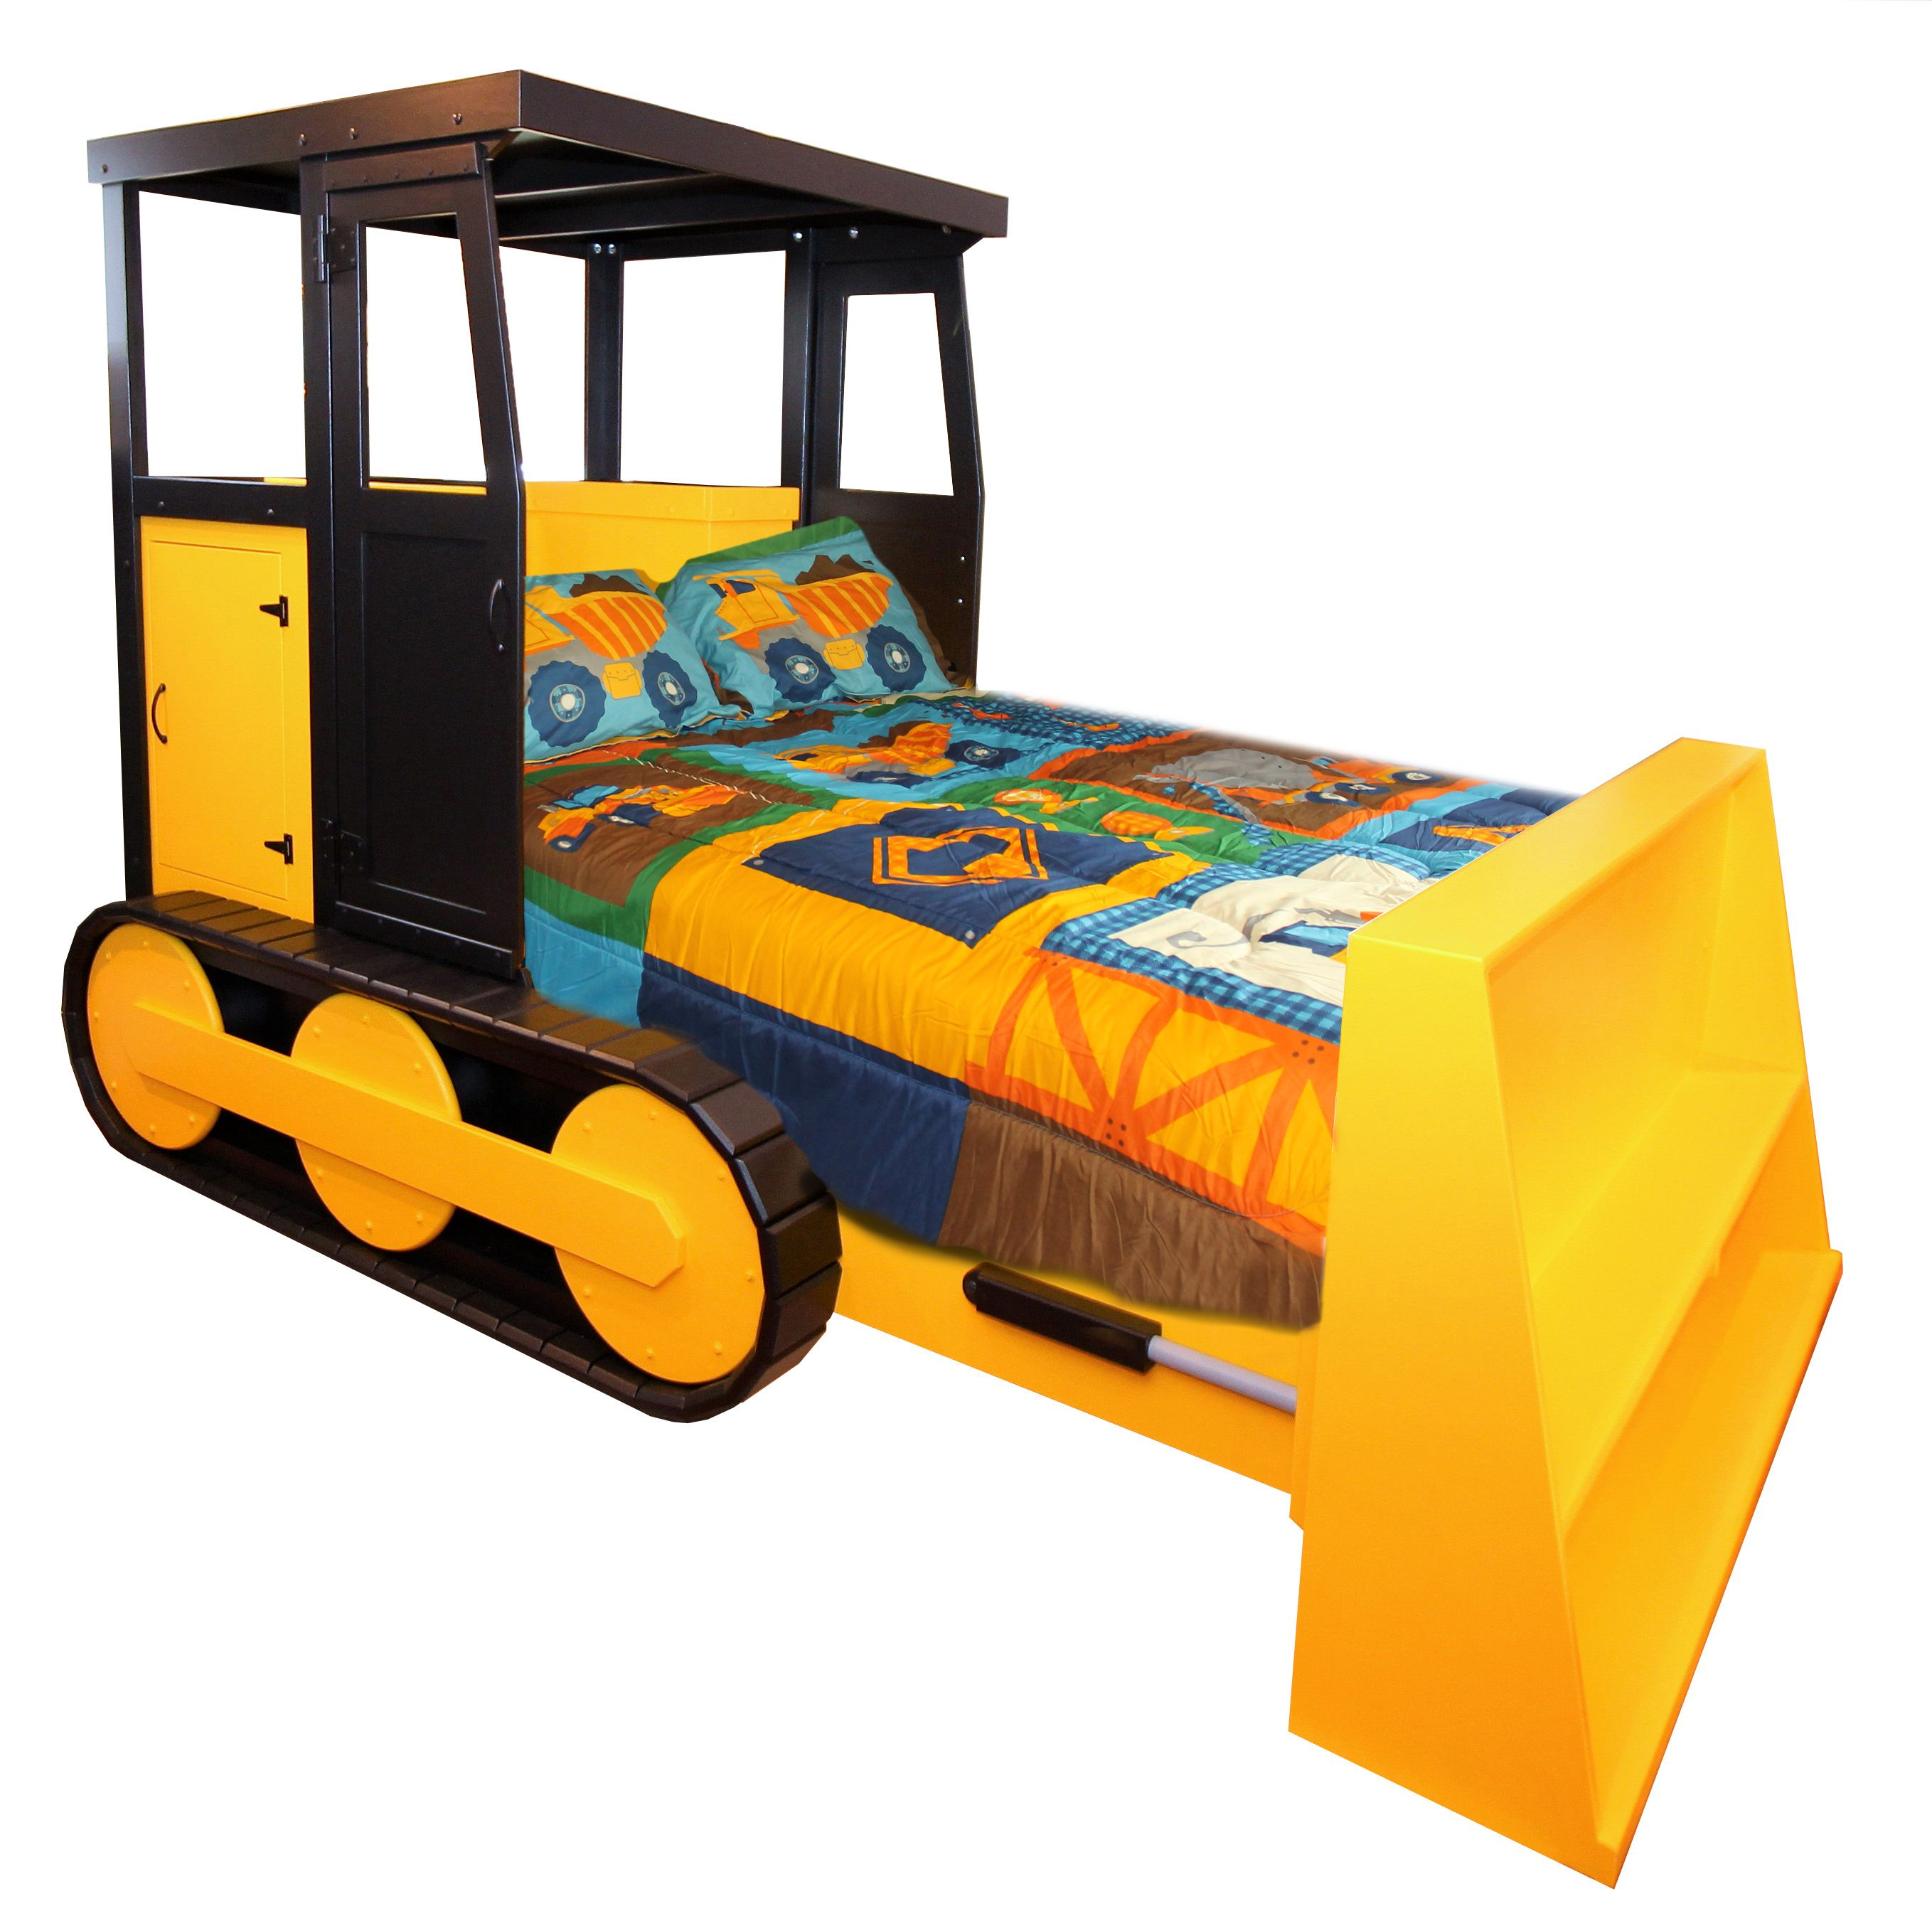 Order Furniture: Buy A Hand Made Bulldozer Bed For Full Size Mattress Set